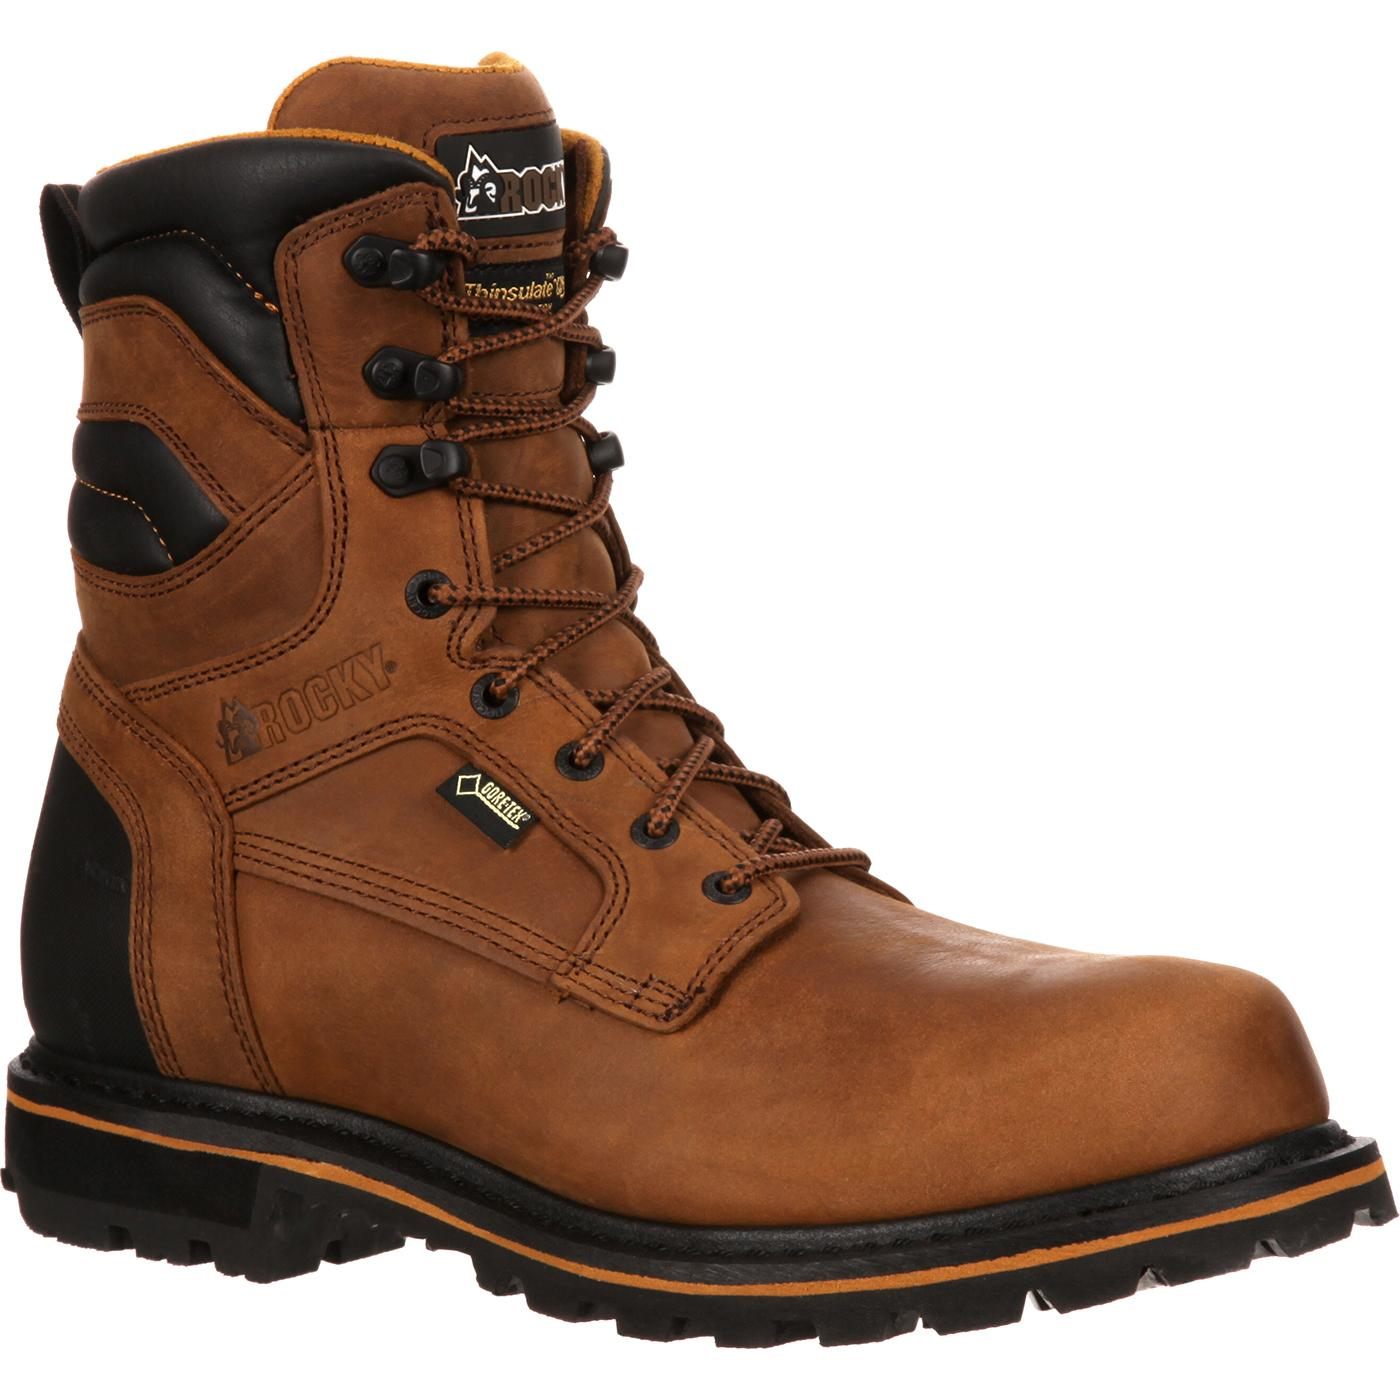 Rocky Governor Composite Toe Gore Tex 174 Insulated Work Boot